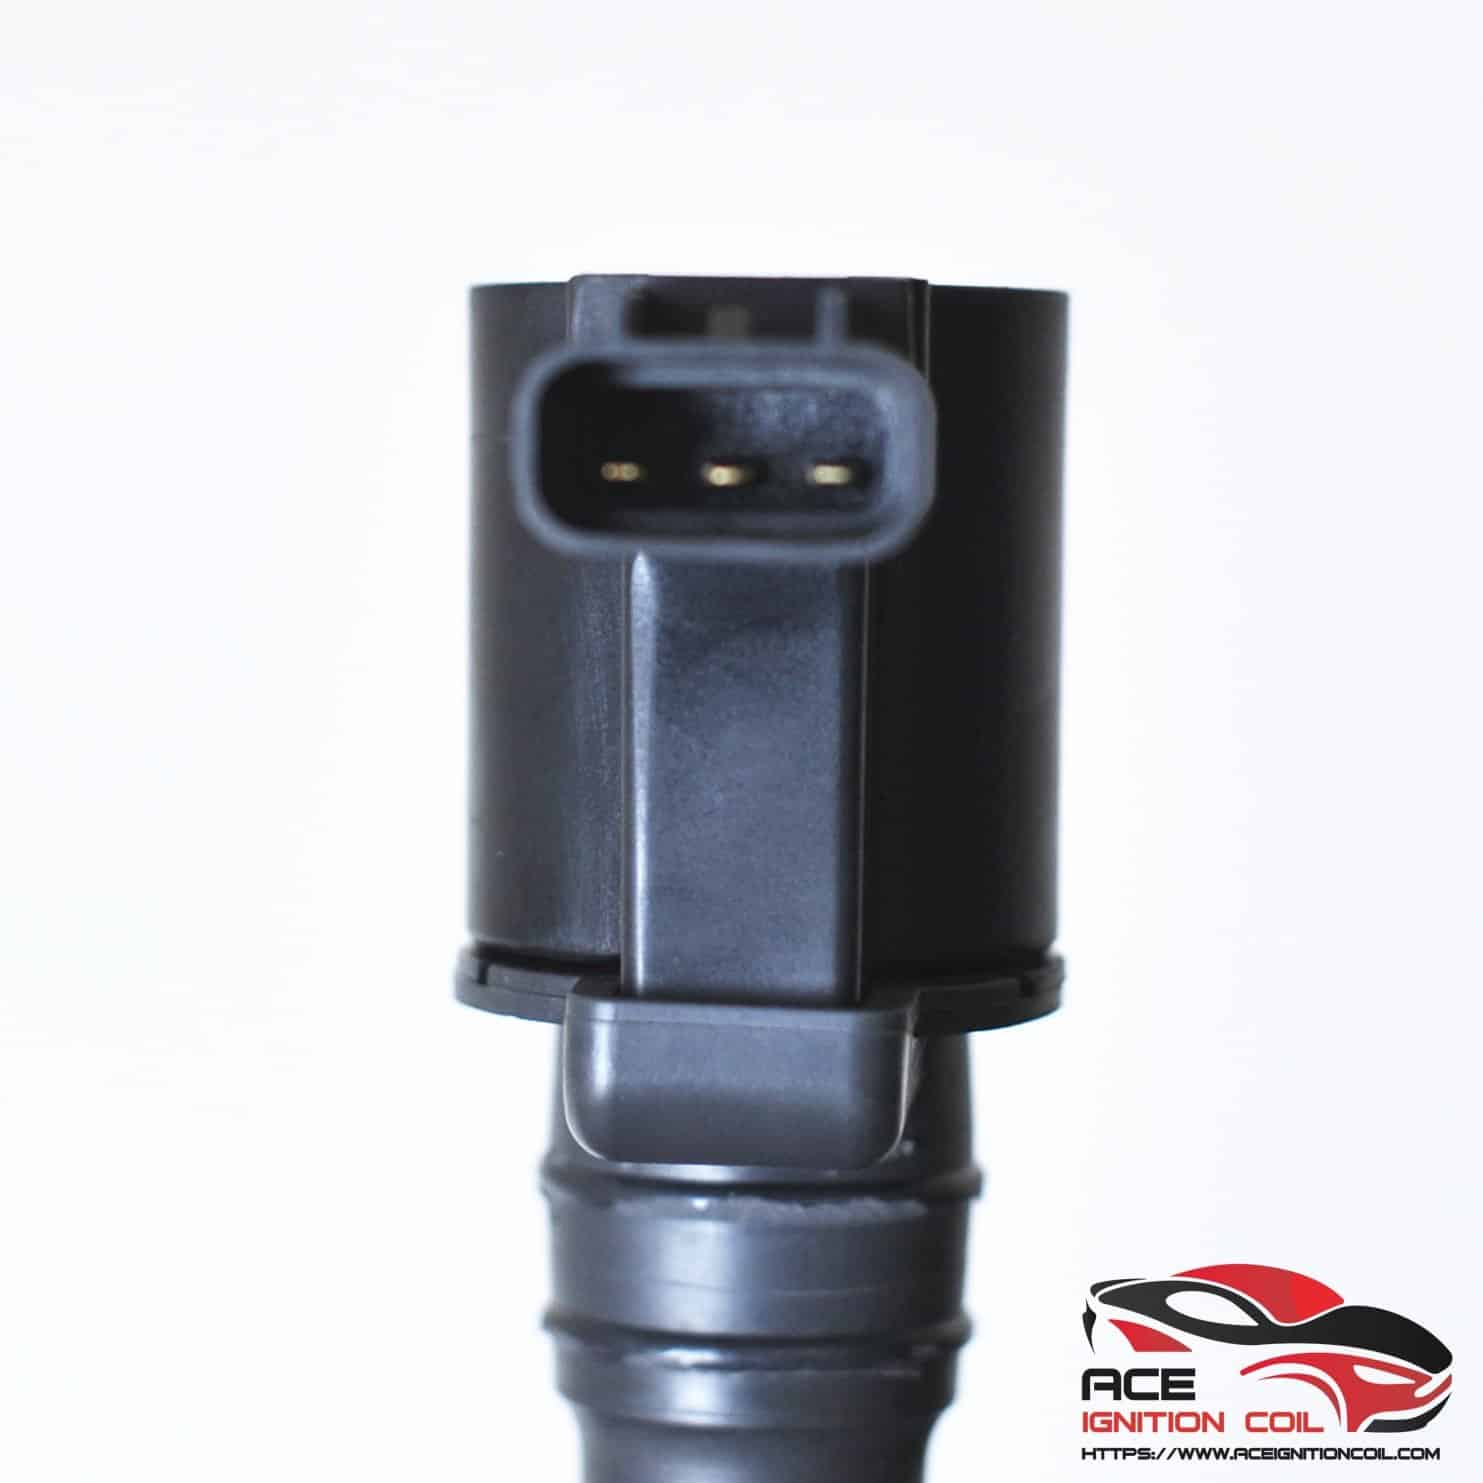 FORD replacement ignition coil 8G43-12A366-AA